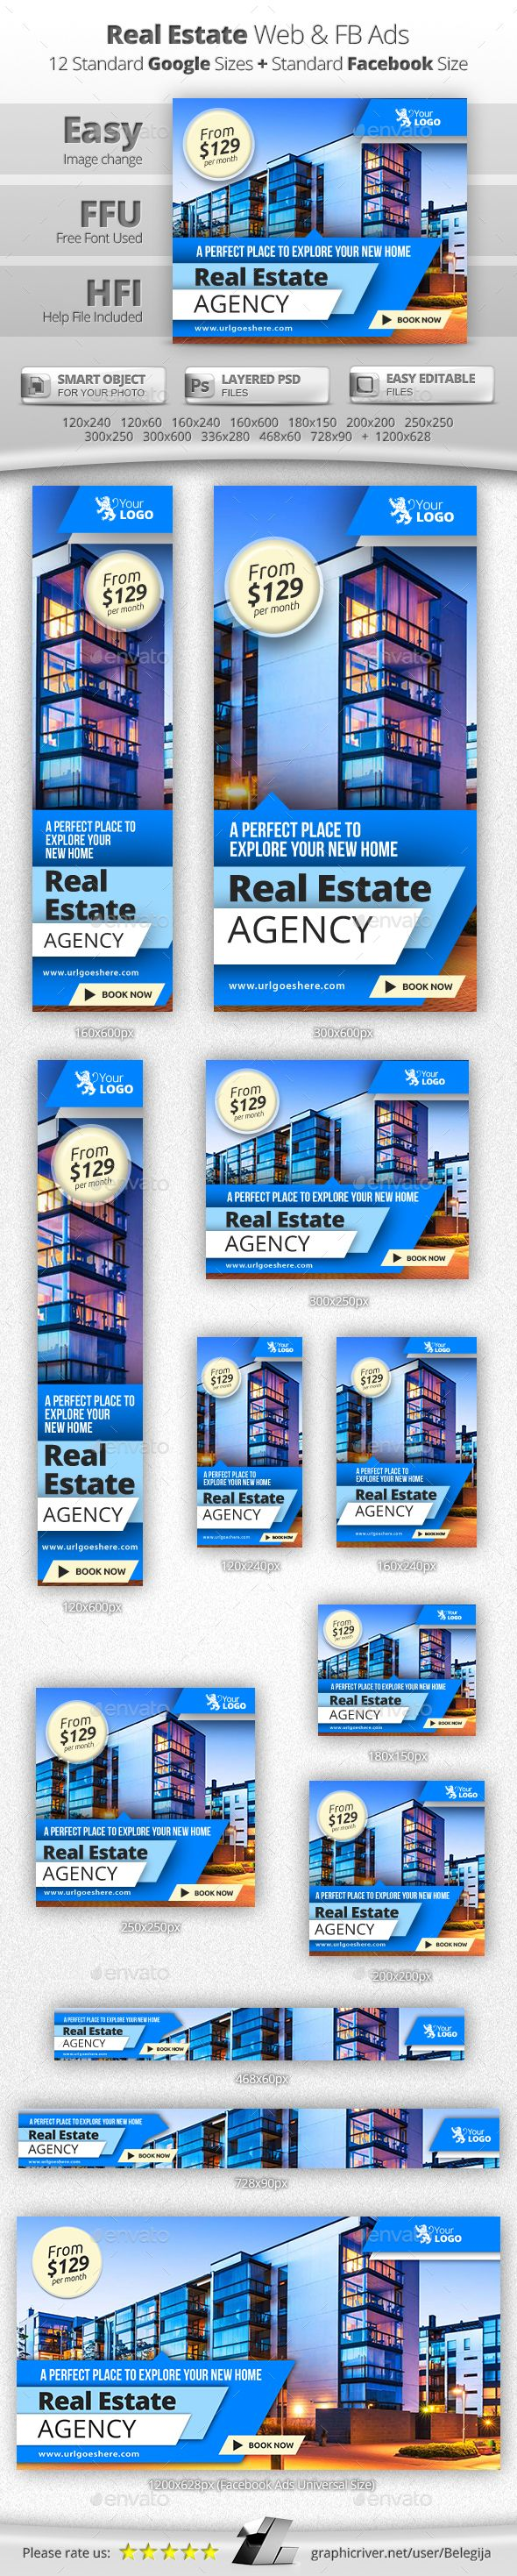 Real Estate Web & Facebook Banners PSD Template #design Download: http://graphicriver.net/item/real-estate-web-facebook-banners/13088516?ref=ksioks